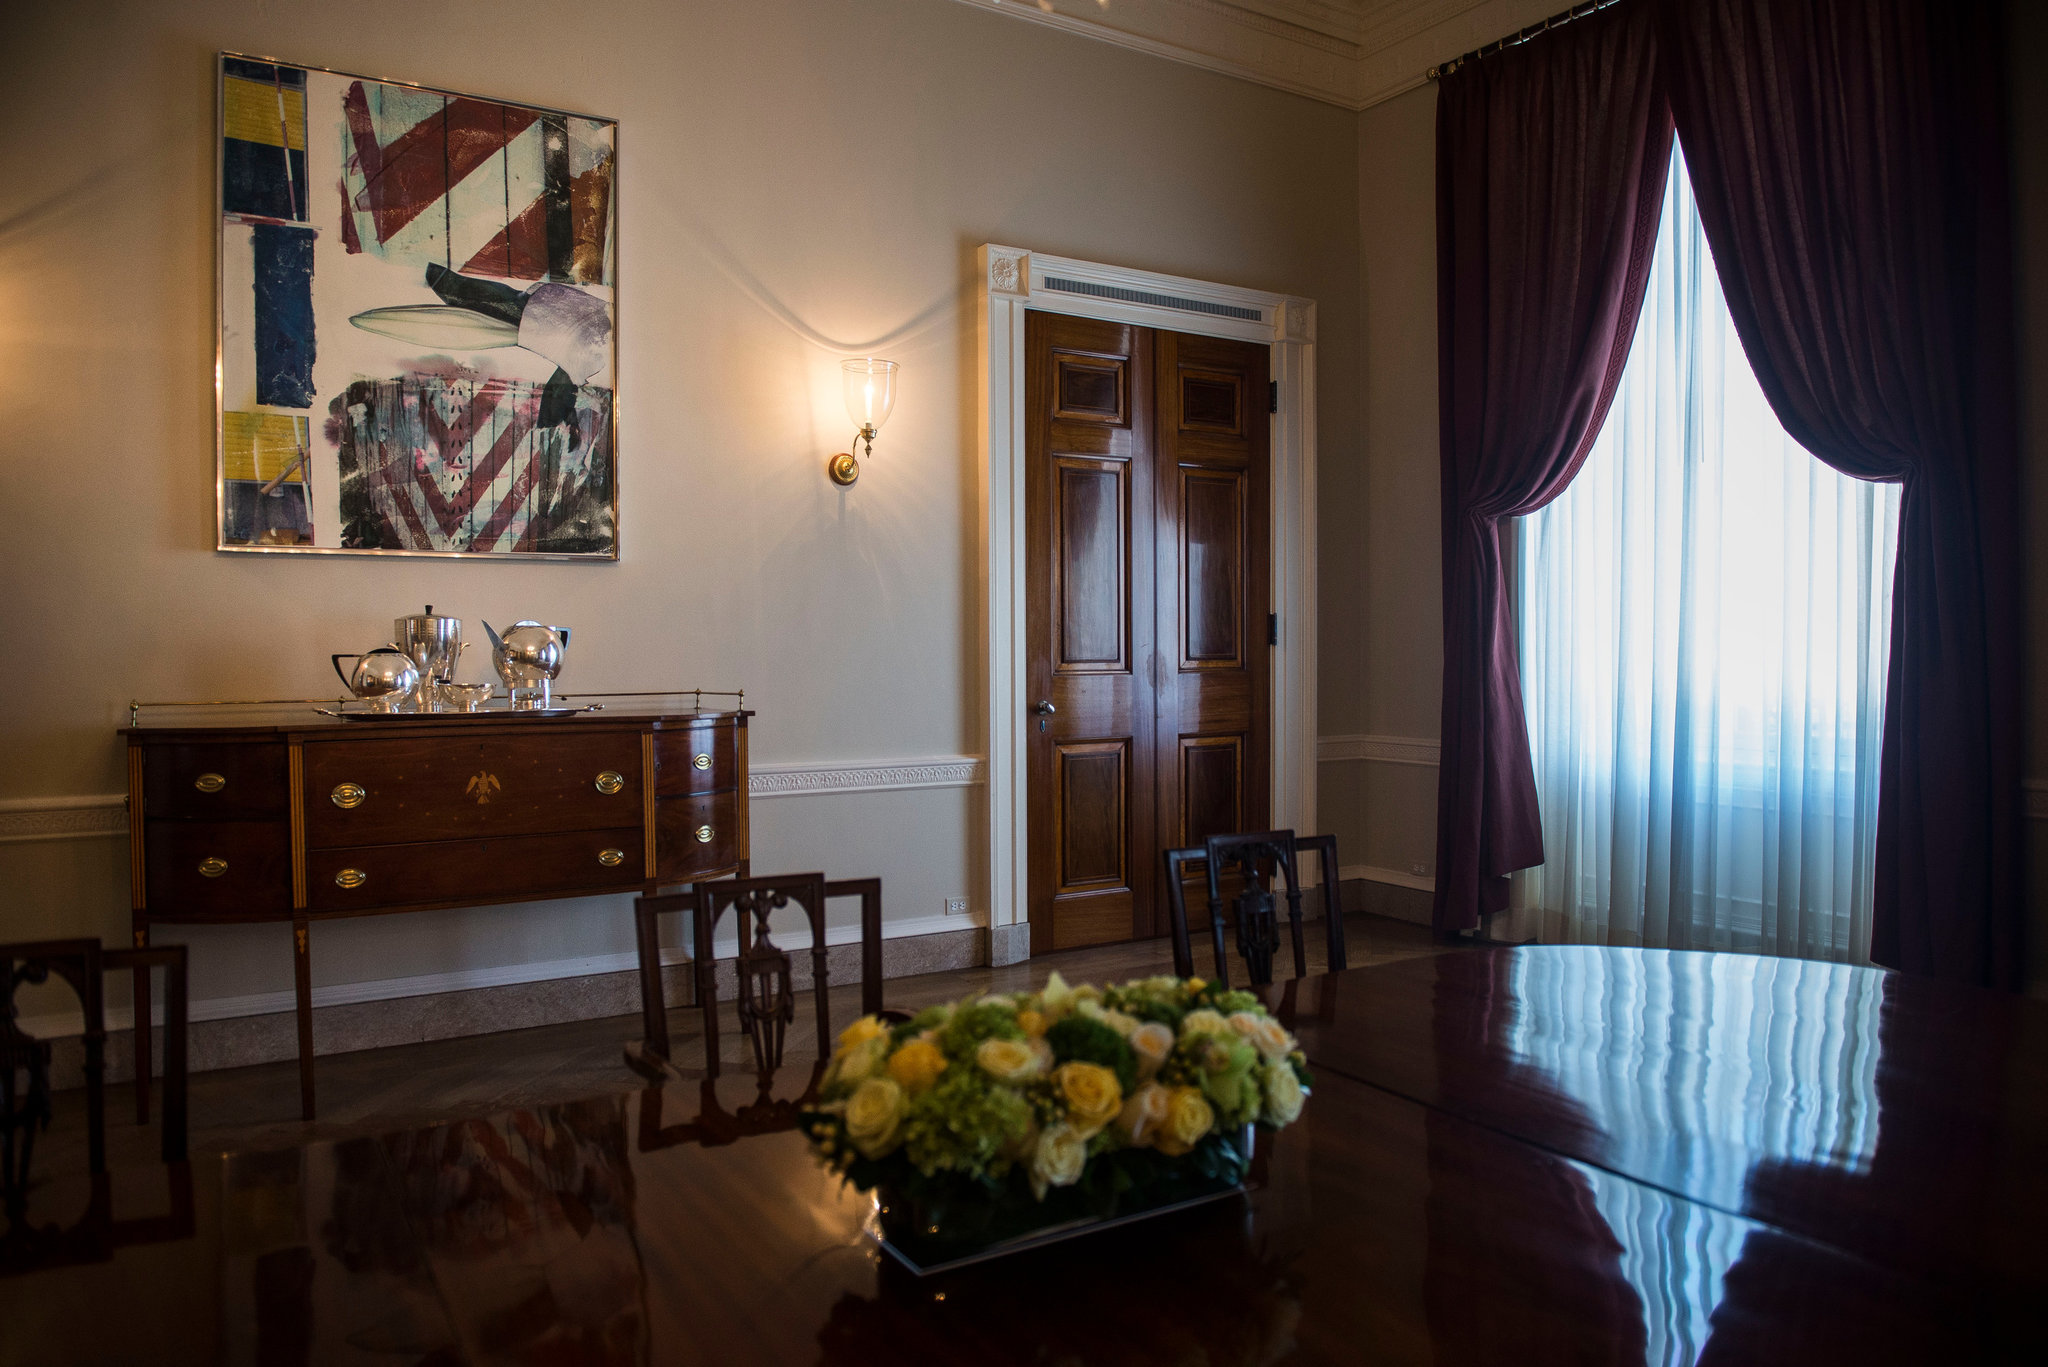 Rauschenberg's Early Bloomer in the White House dining room